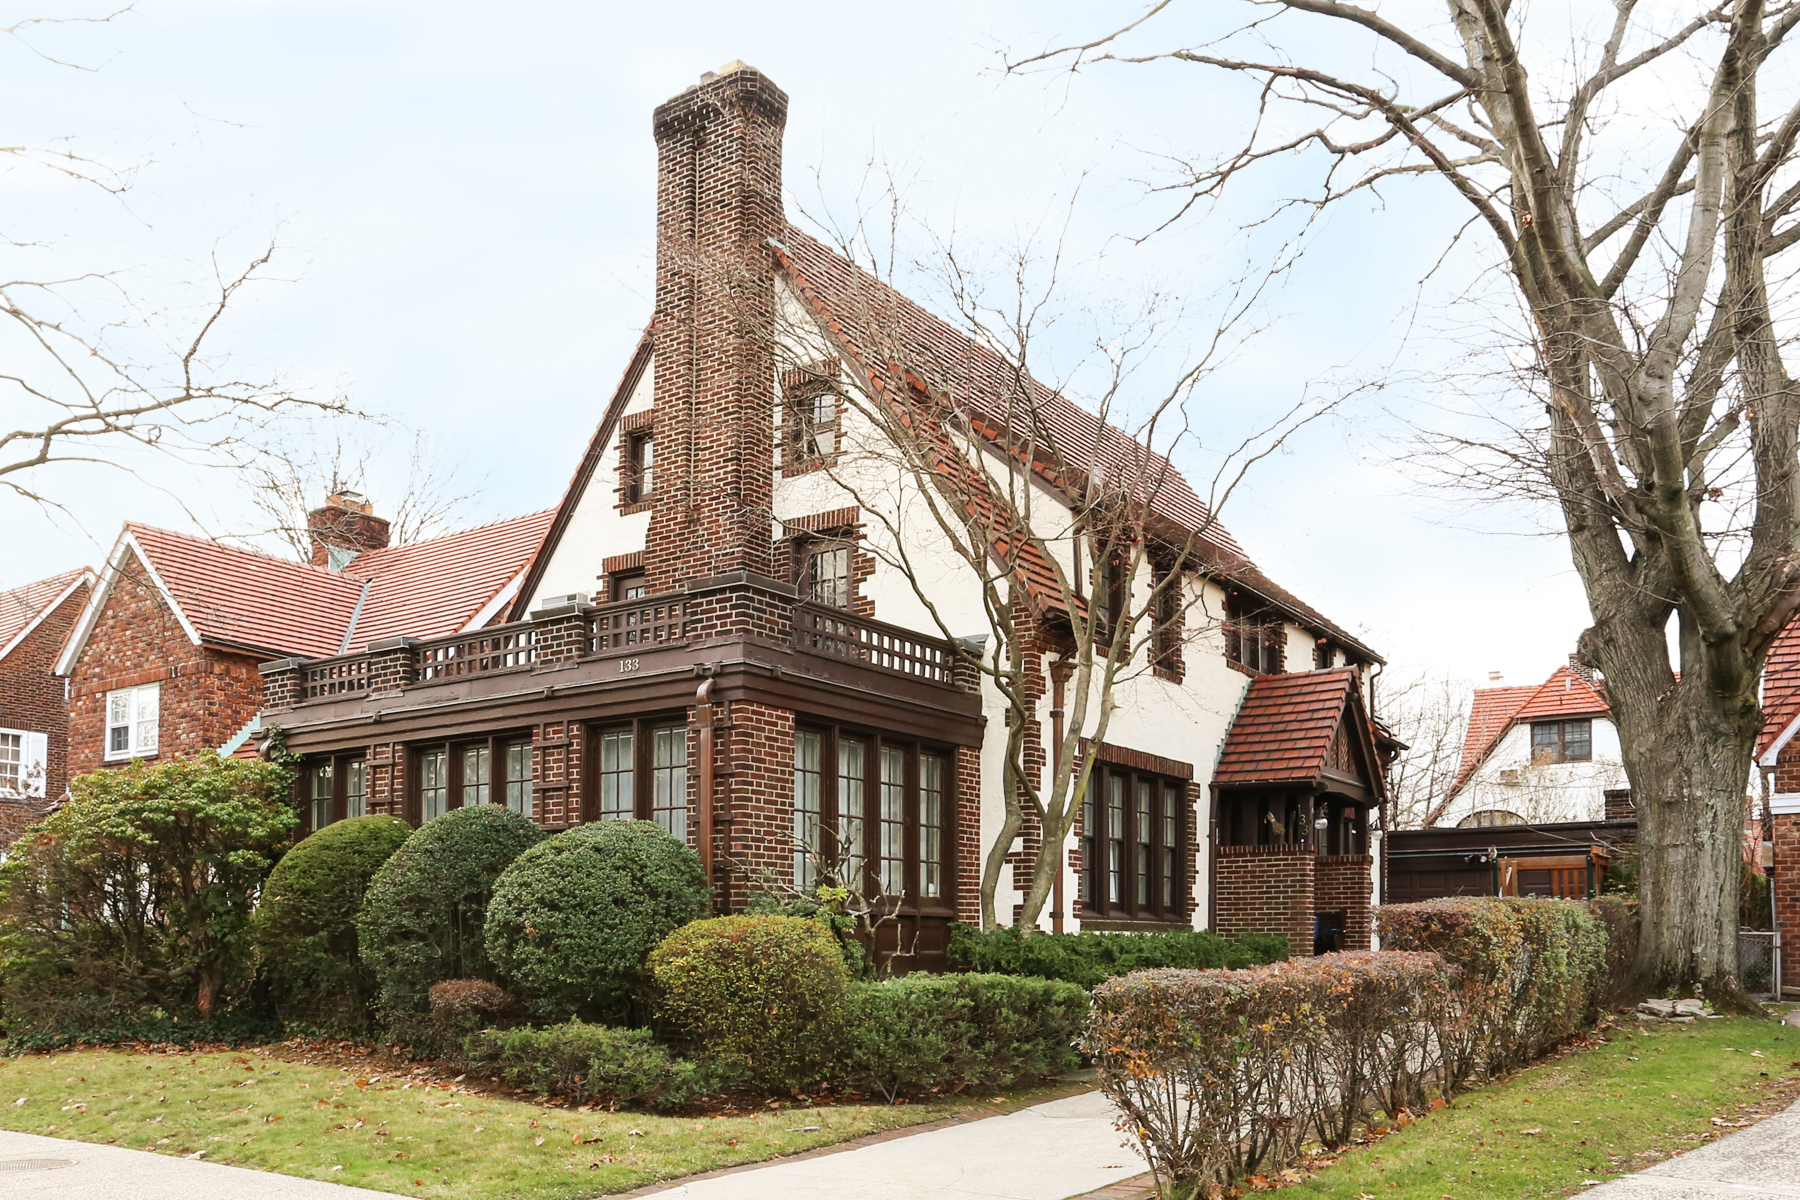 """Single Family Home for Sale at """"CENTER HALL COLONIAL IN PRIME LOCATION"""" 133 Ascan Avenue, Forest Hills Gardens, Forest Hills, New York 11375 United States"""